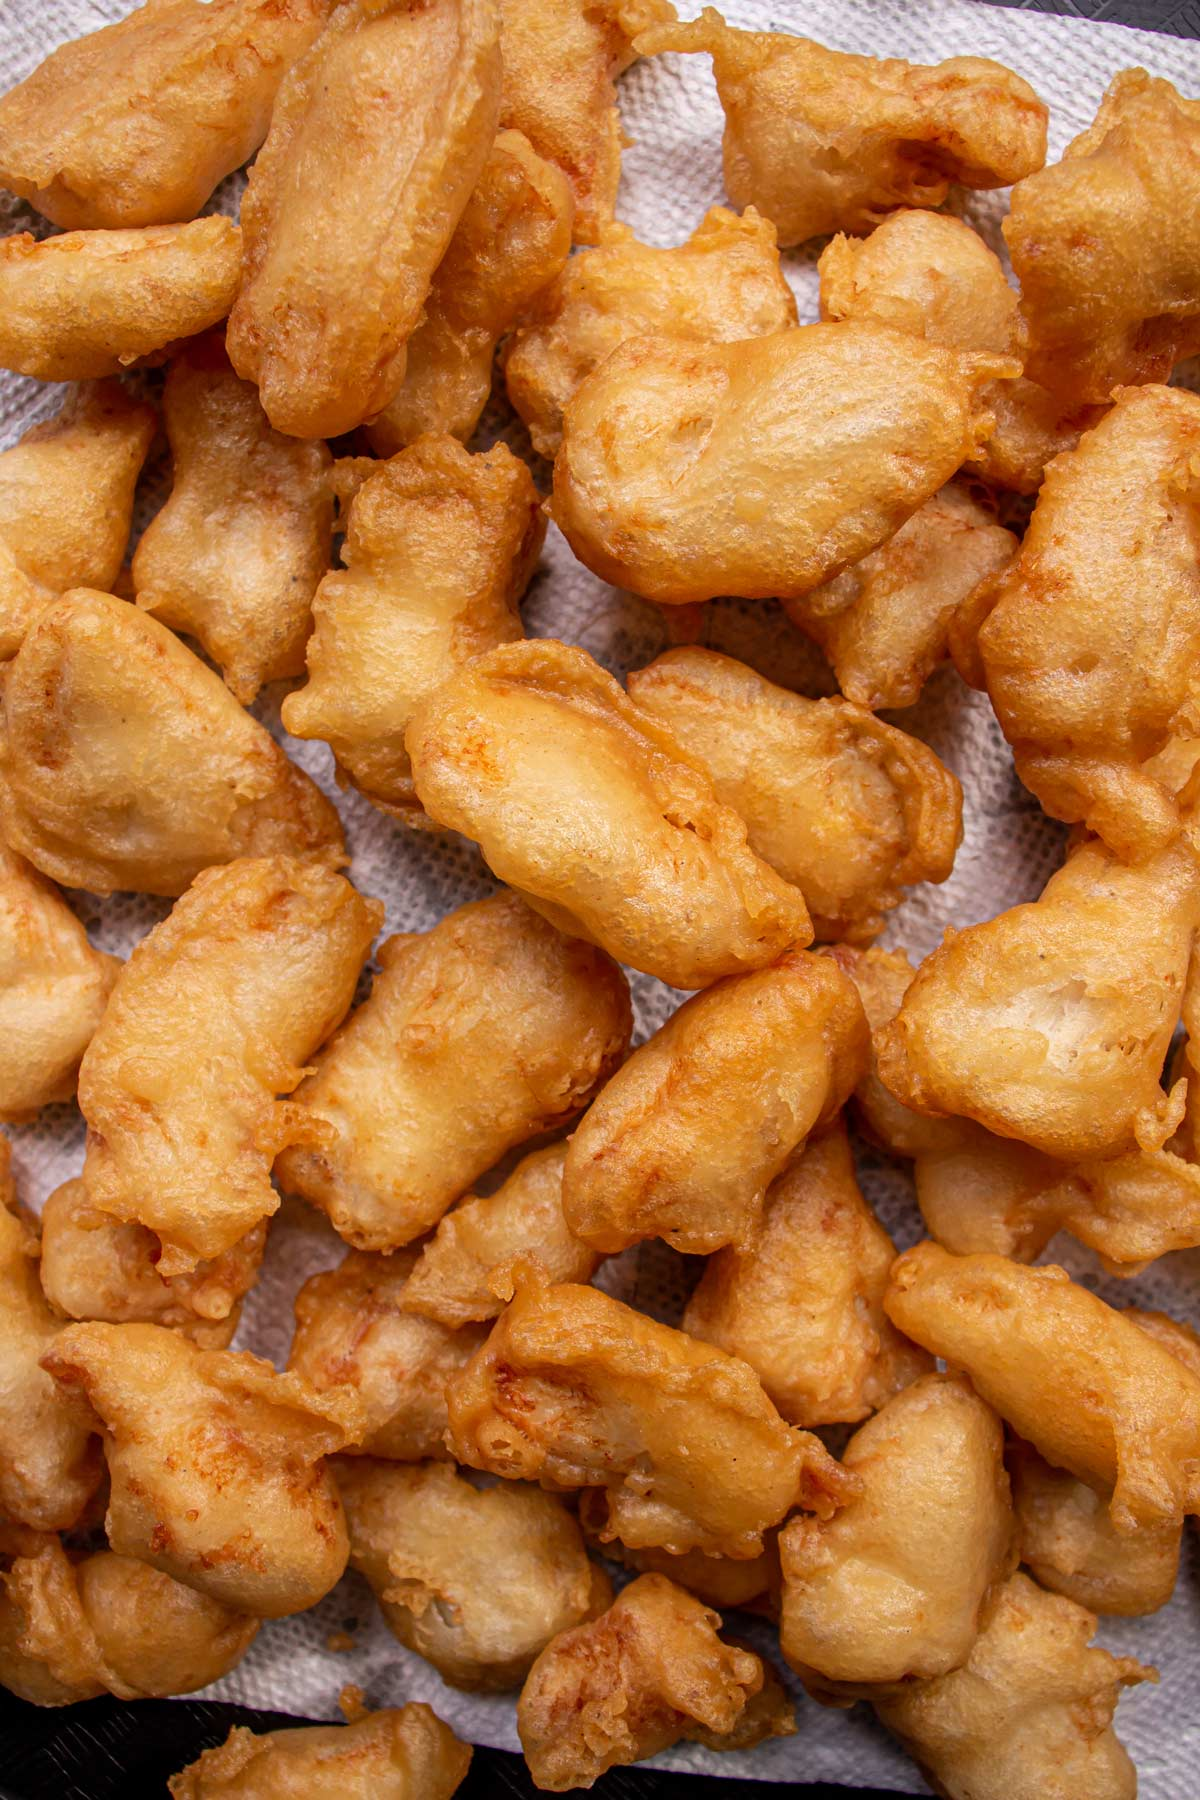 Small rectangular strips of battered fried chicken piled on a surface.